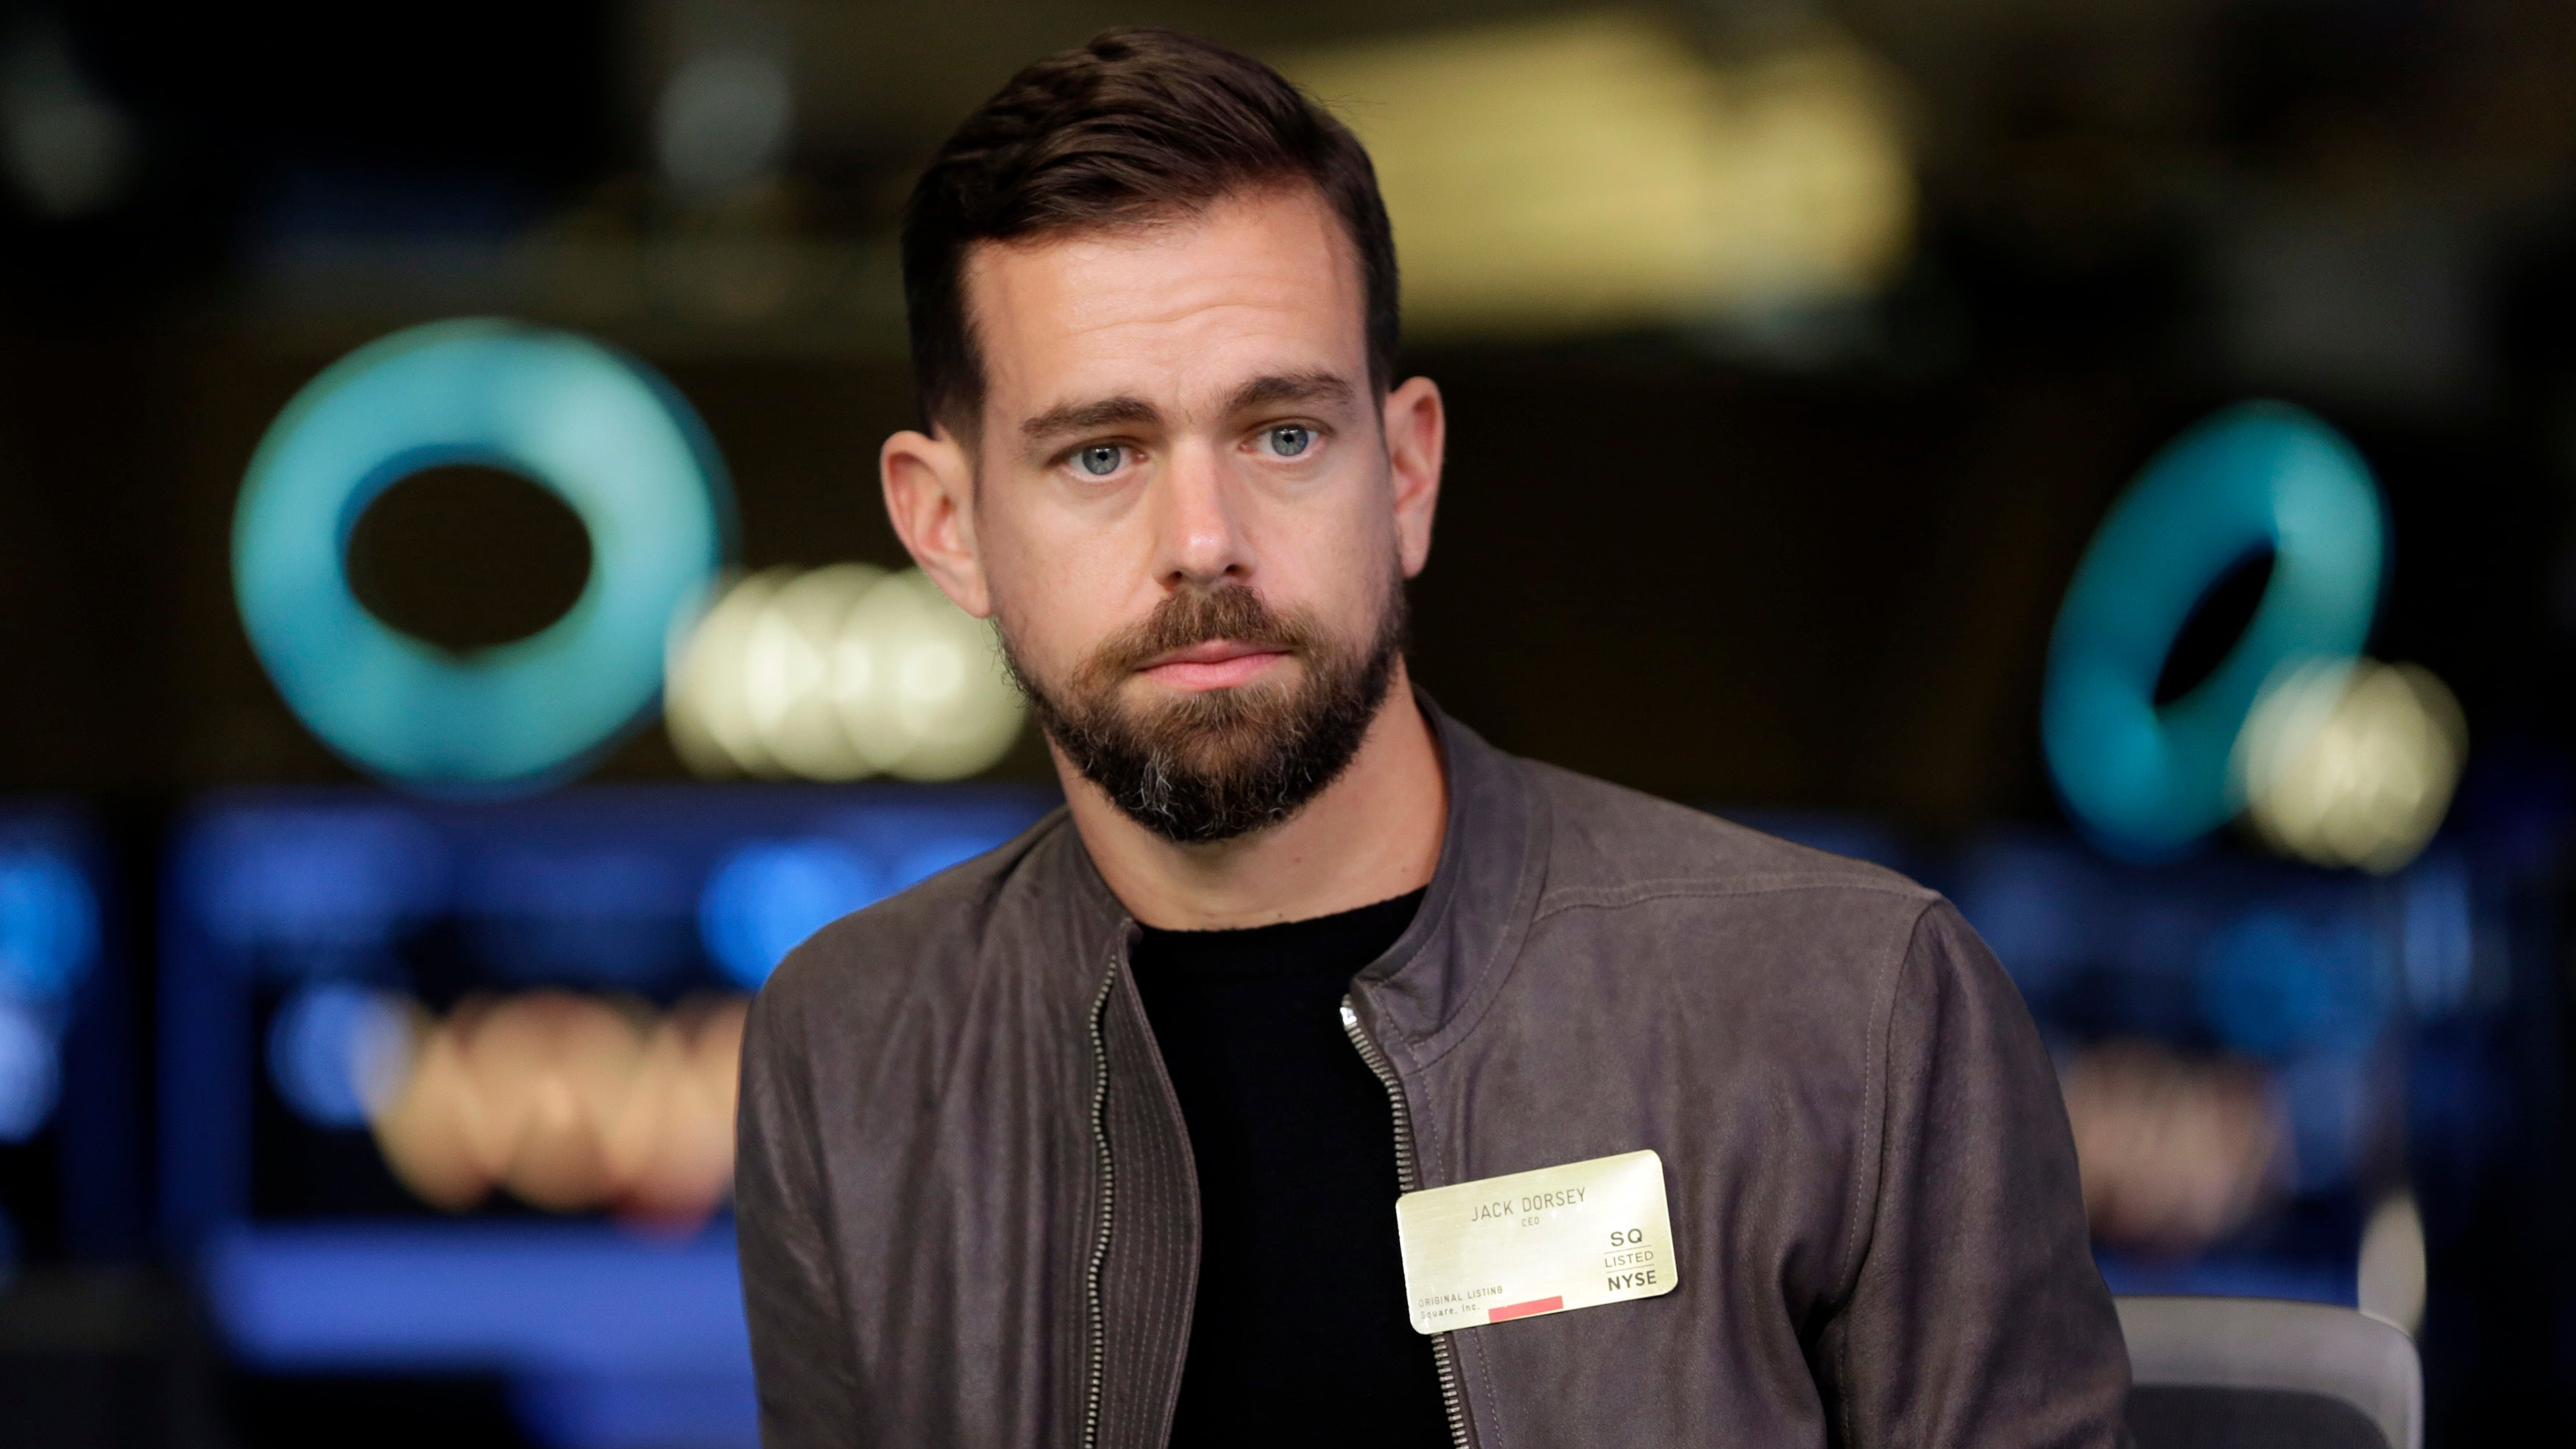 Jack Dorsey Seems Pretty Sure Bitcoin Will Be The World's 'Single Currency' In 10 Years